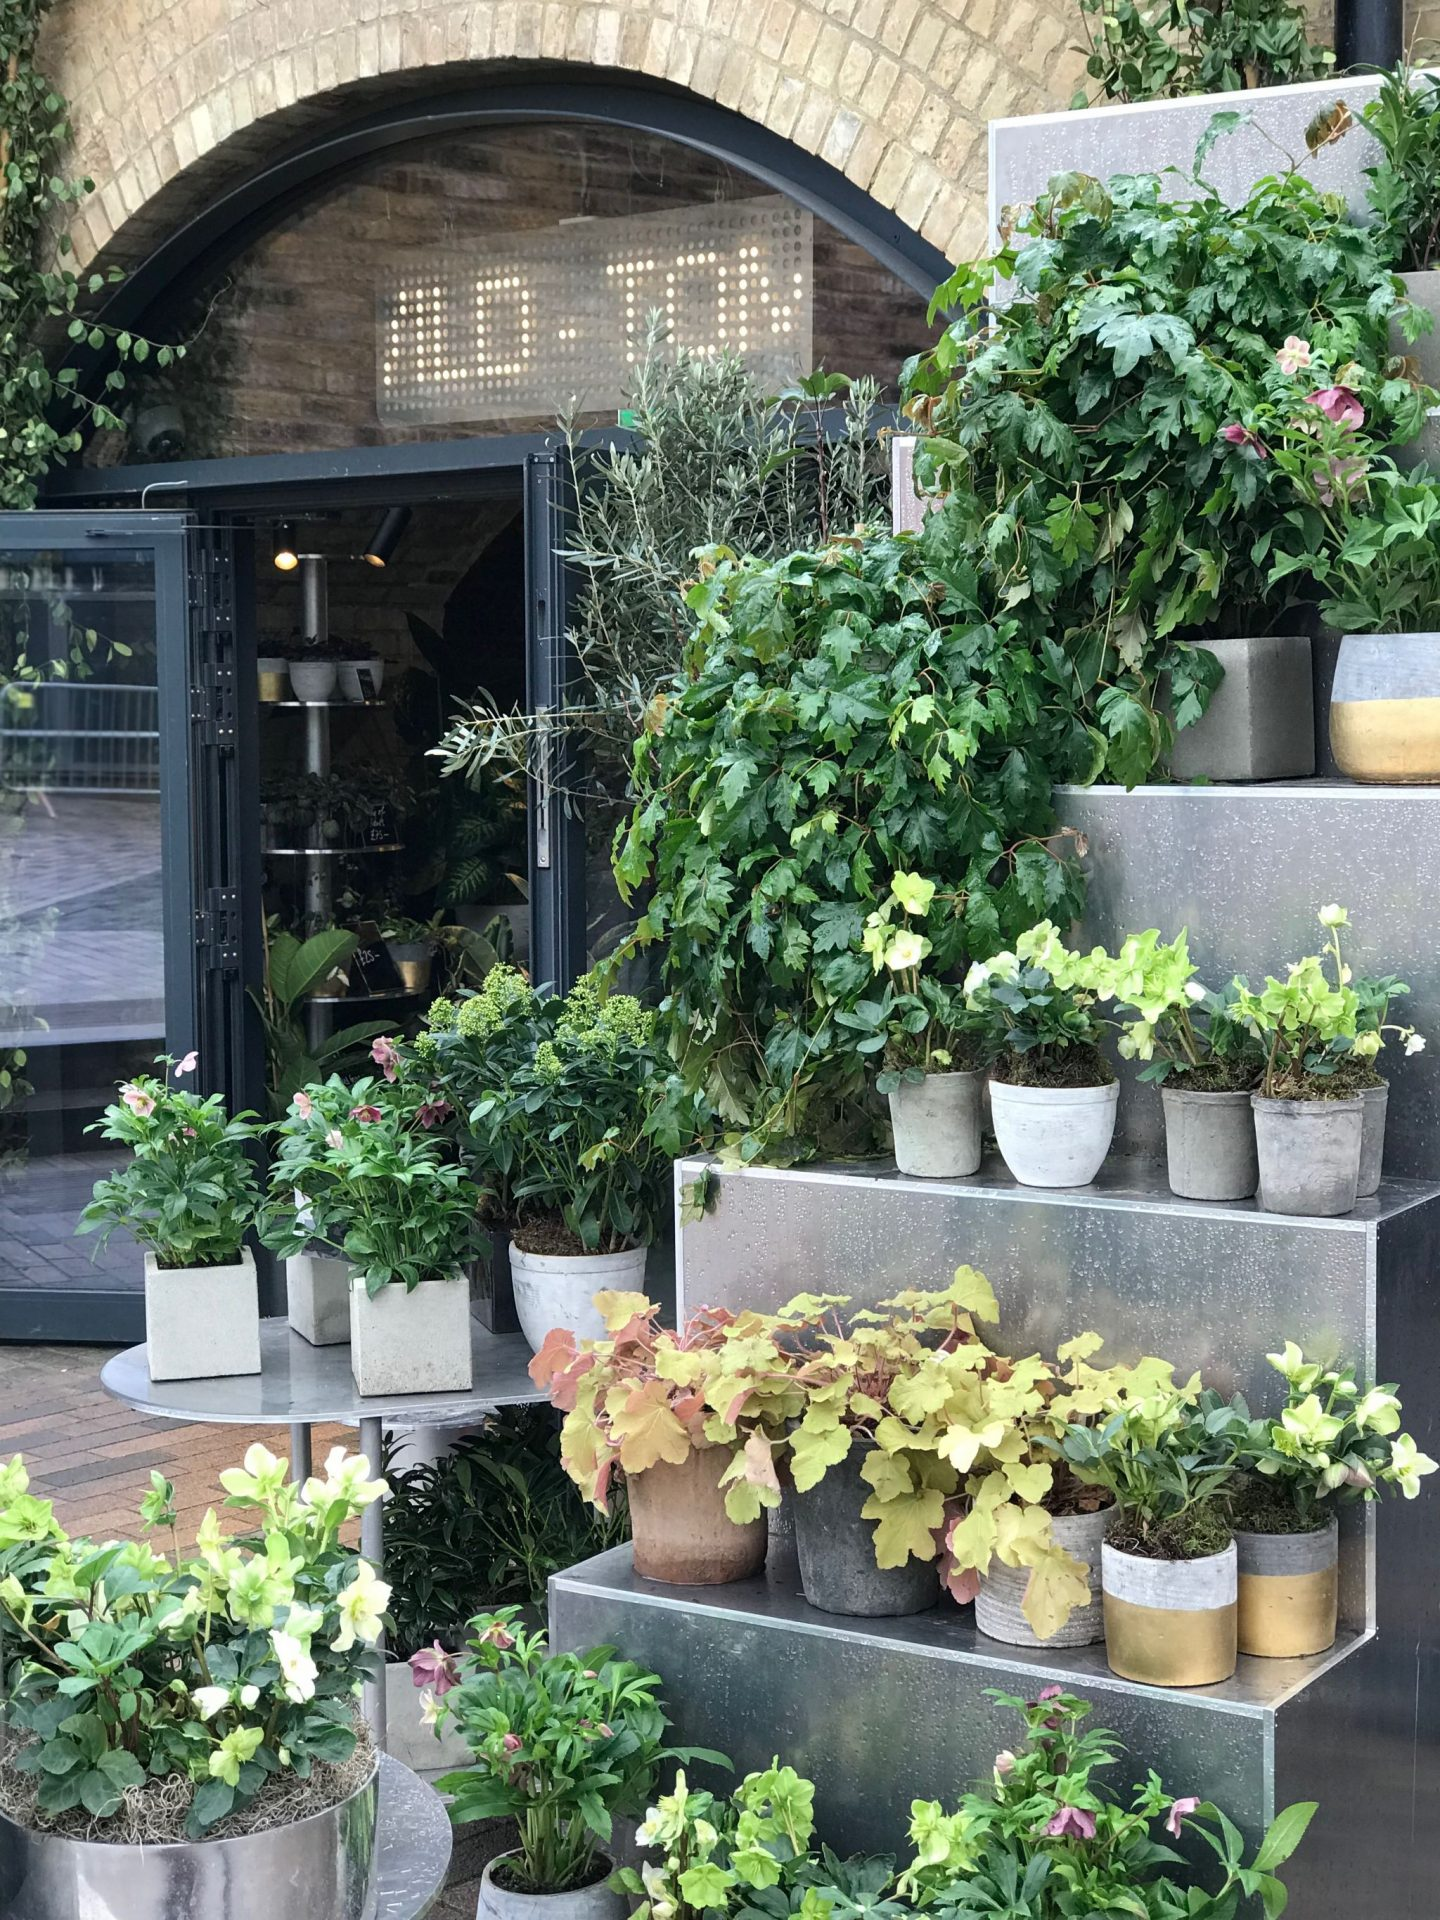 Coal Drops Yard, Tom Dixon, Coal Office, Nikki Tibbles Wild, Mary Middleton for Hello Peagreen